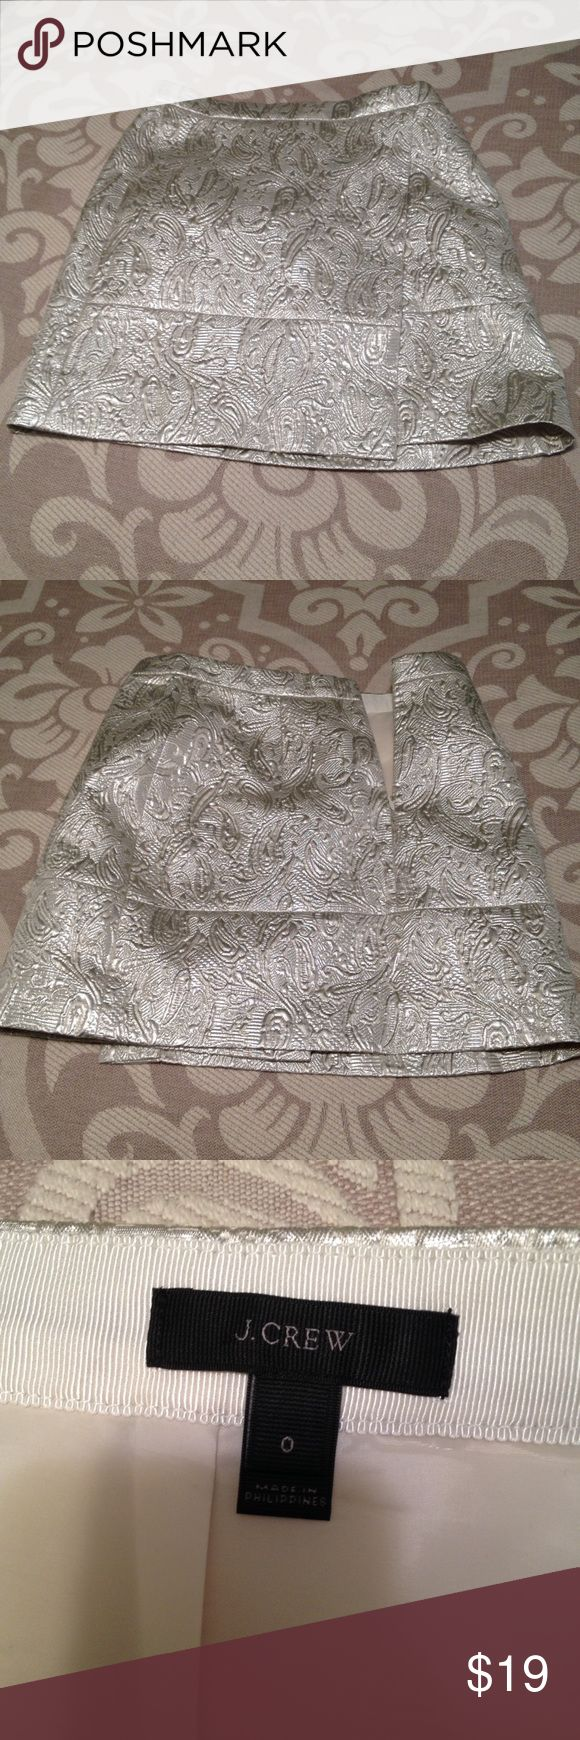 J. Crew silver metallic brocade print skirt Size 0. Runs big. Worn once. Has a split on the side, gives the skirt some edge. Good length for a mini skirt. Can bend down easily without worrying. Great holiday skirt 😍😍 J. Crew Skirts Mini